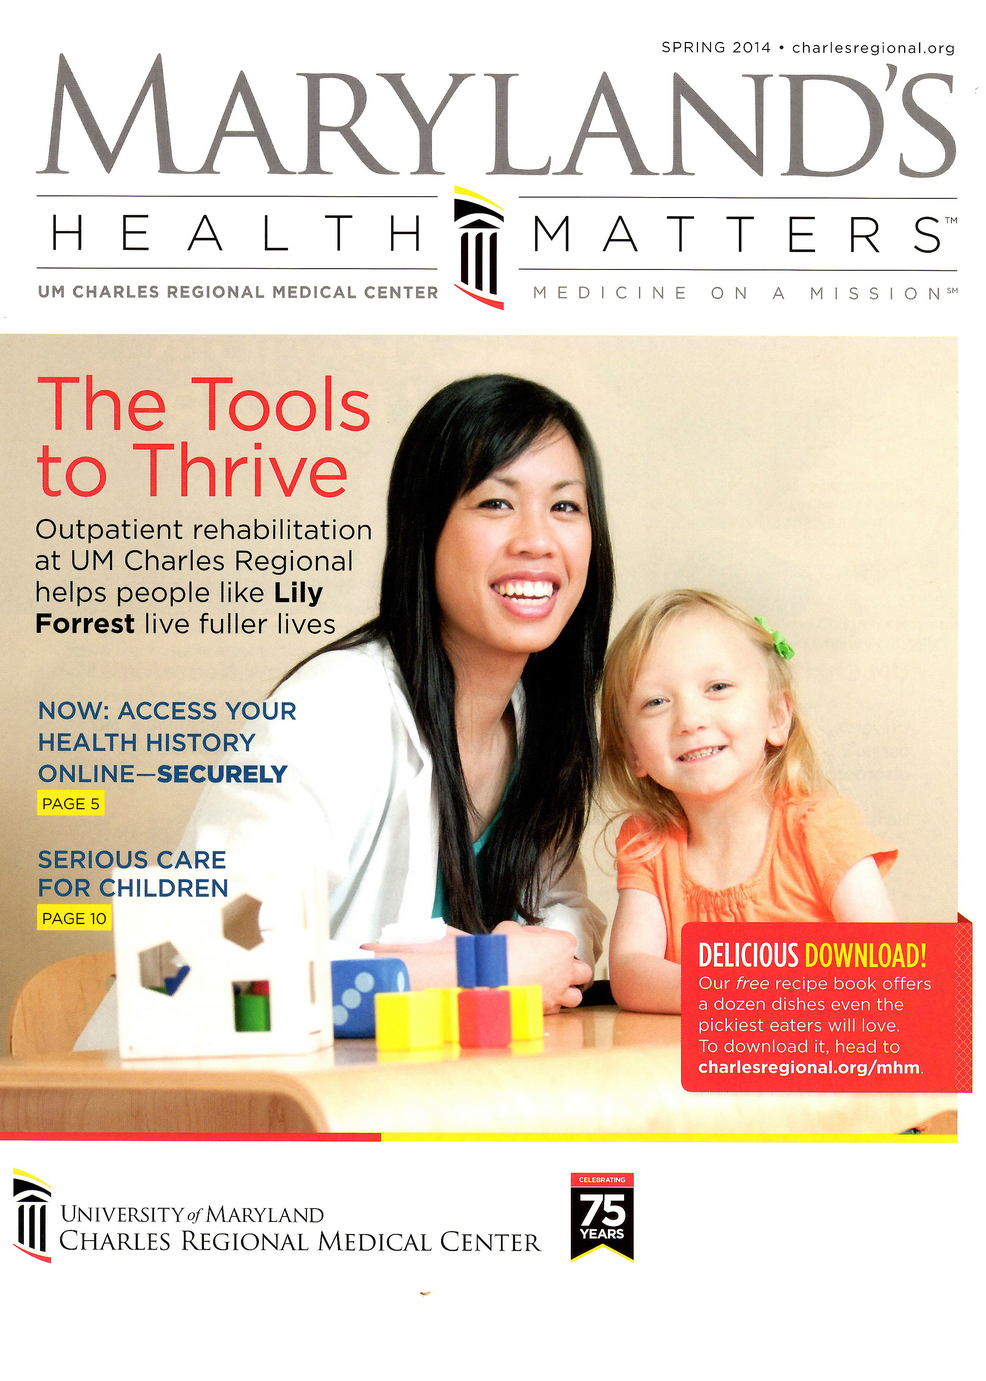 Cover photo for Maryland's Health Matters magazine.